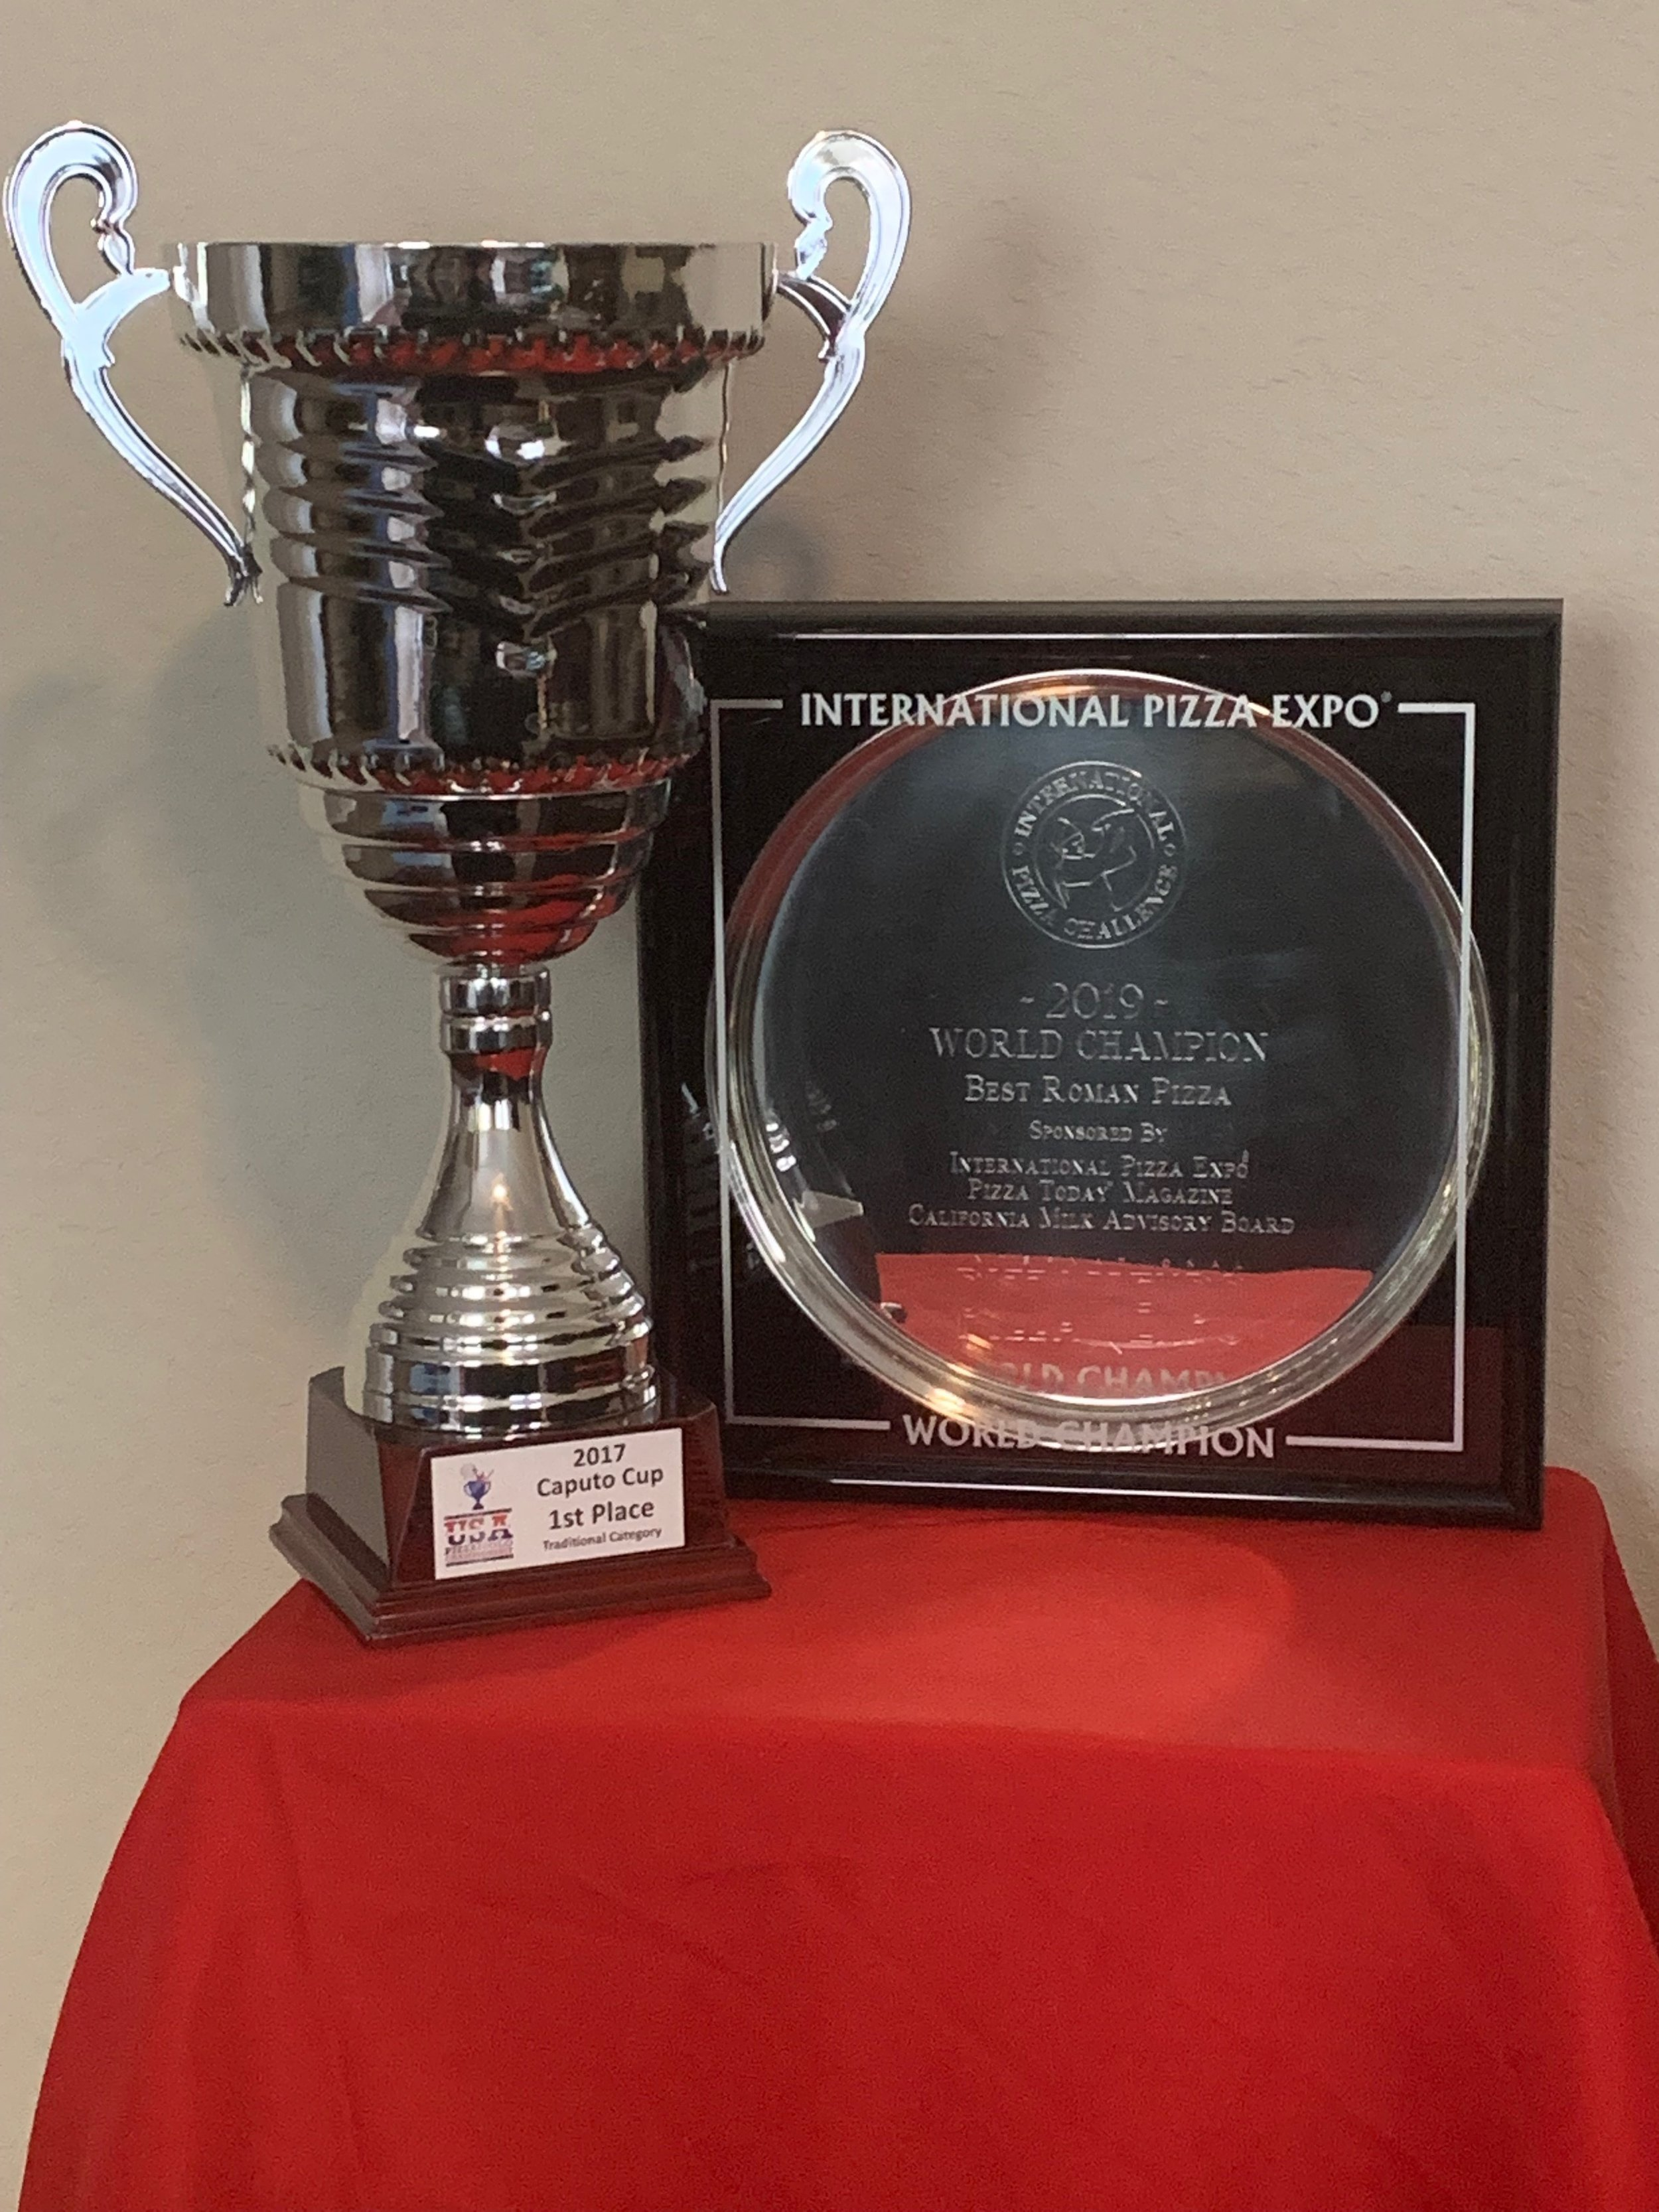 Caputo Cup Champions 2017 and International Pizza Challenge Champions 2019 - Best Traditional PizzaandBest Roman Pizza